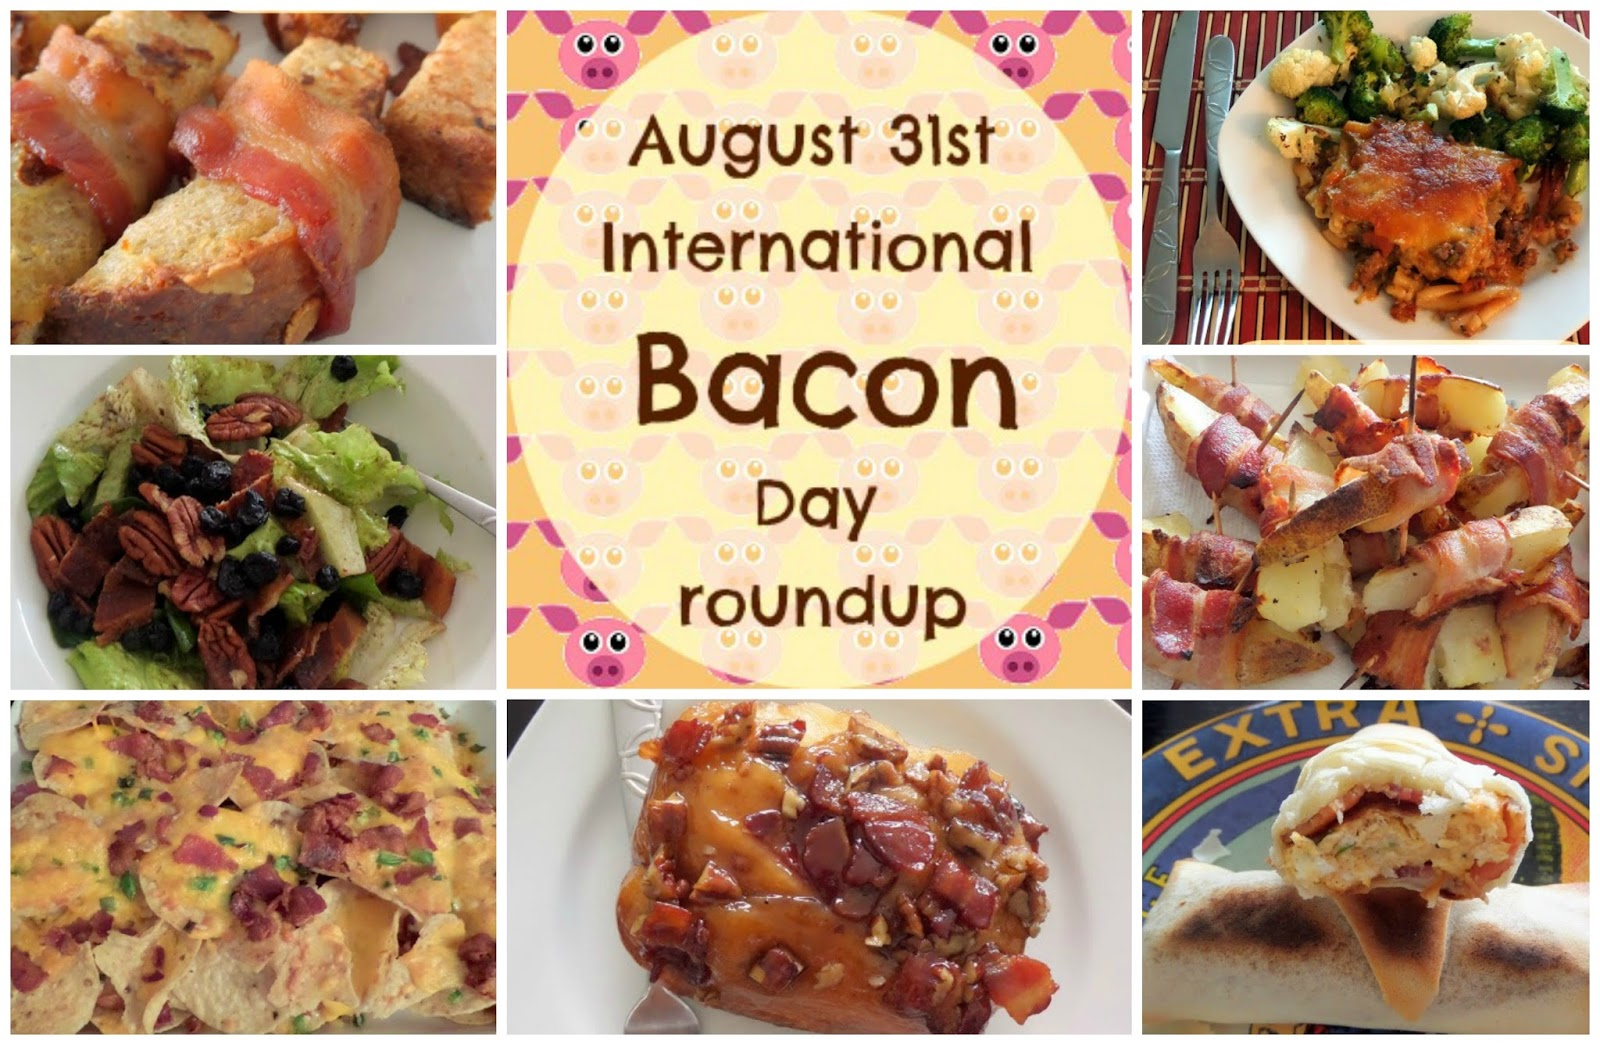 Bacon Day Roundup:  My favorite bacon recipes all in one place for International Bacon Day